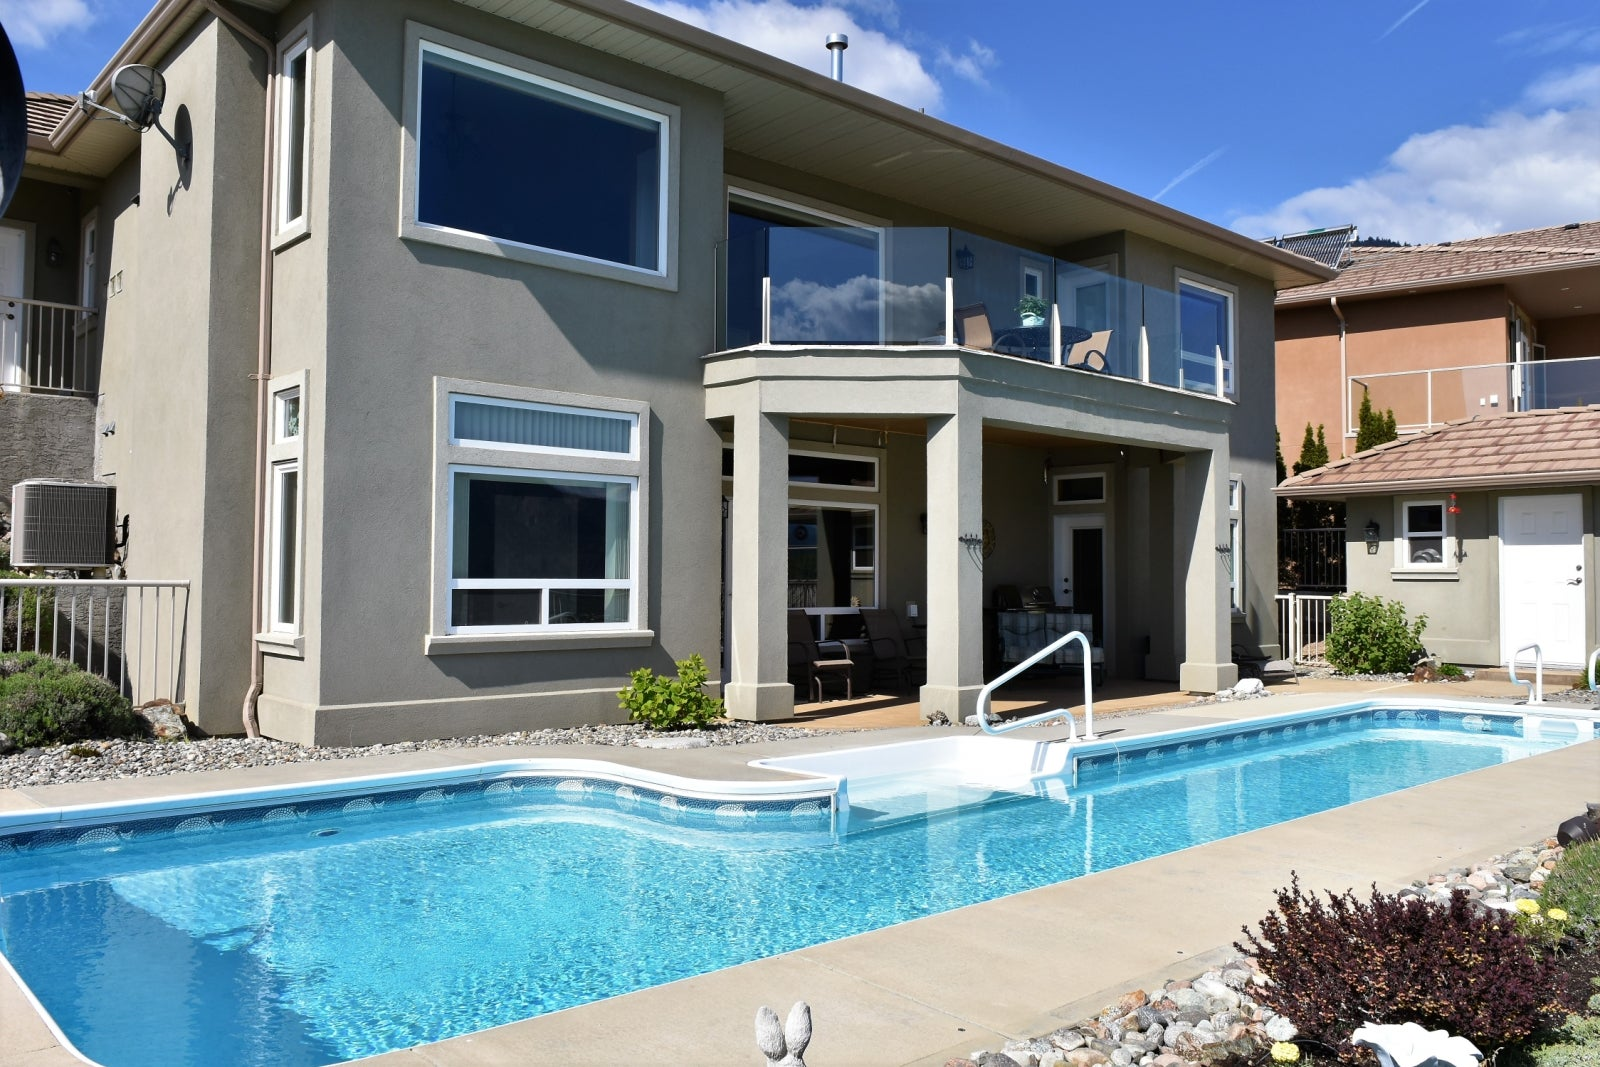 11715 Olympic View Drive - Osoyoos Single Family for sale, 4 Bedrooms (176846) #6